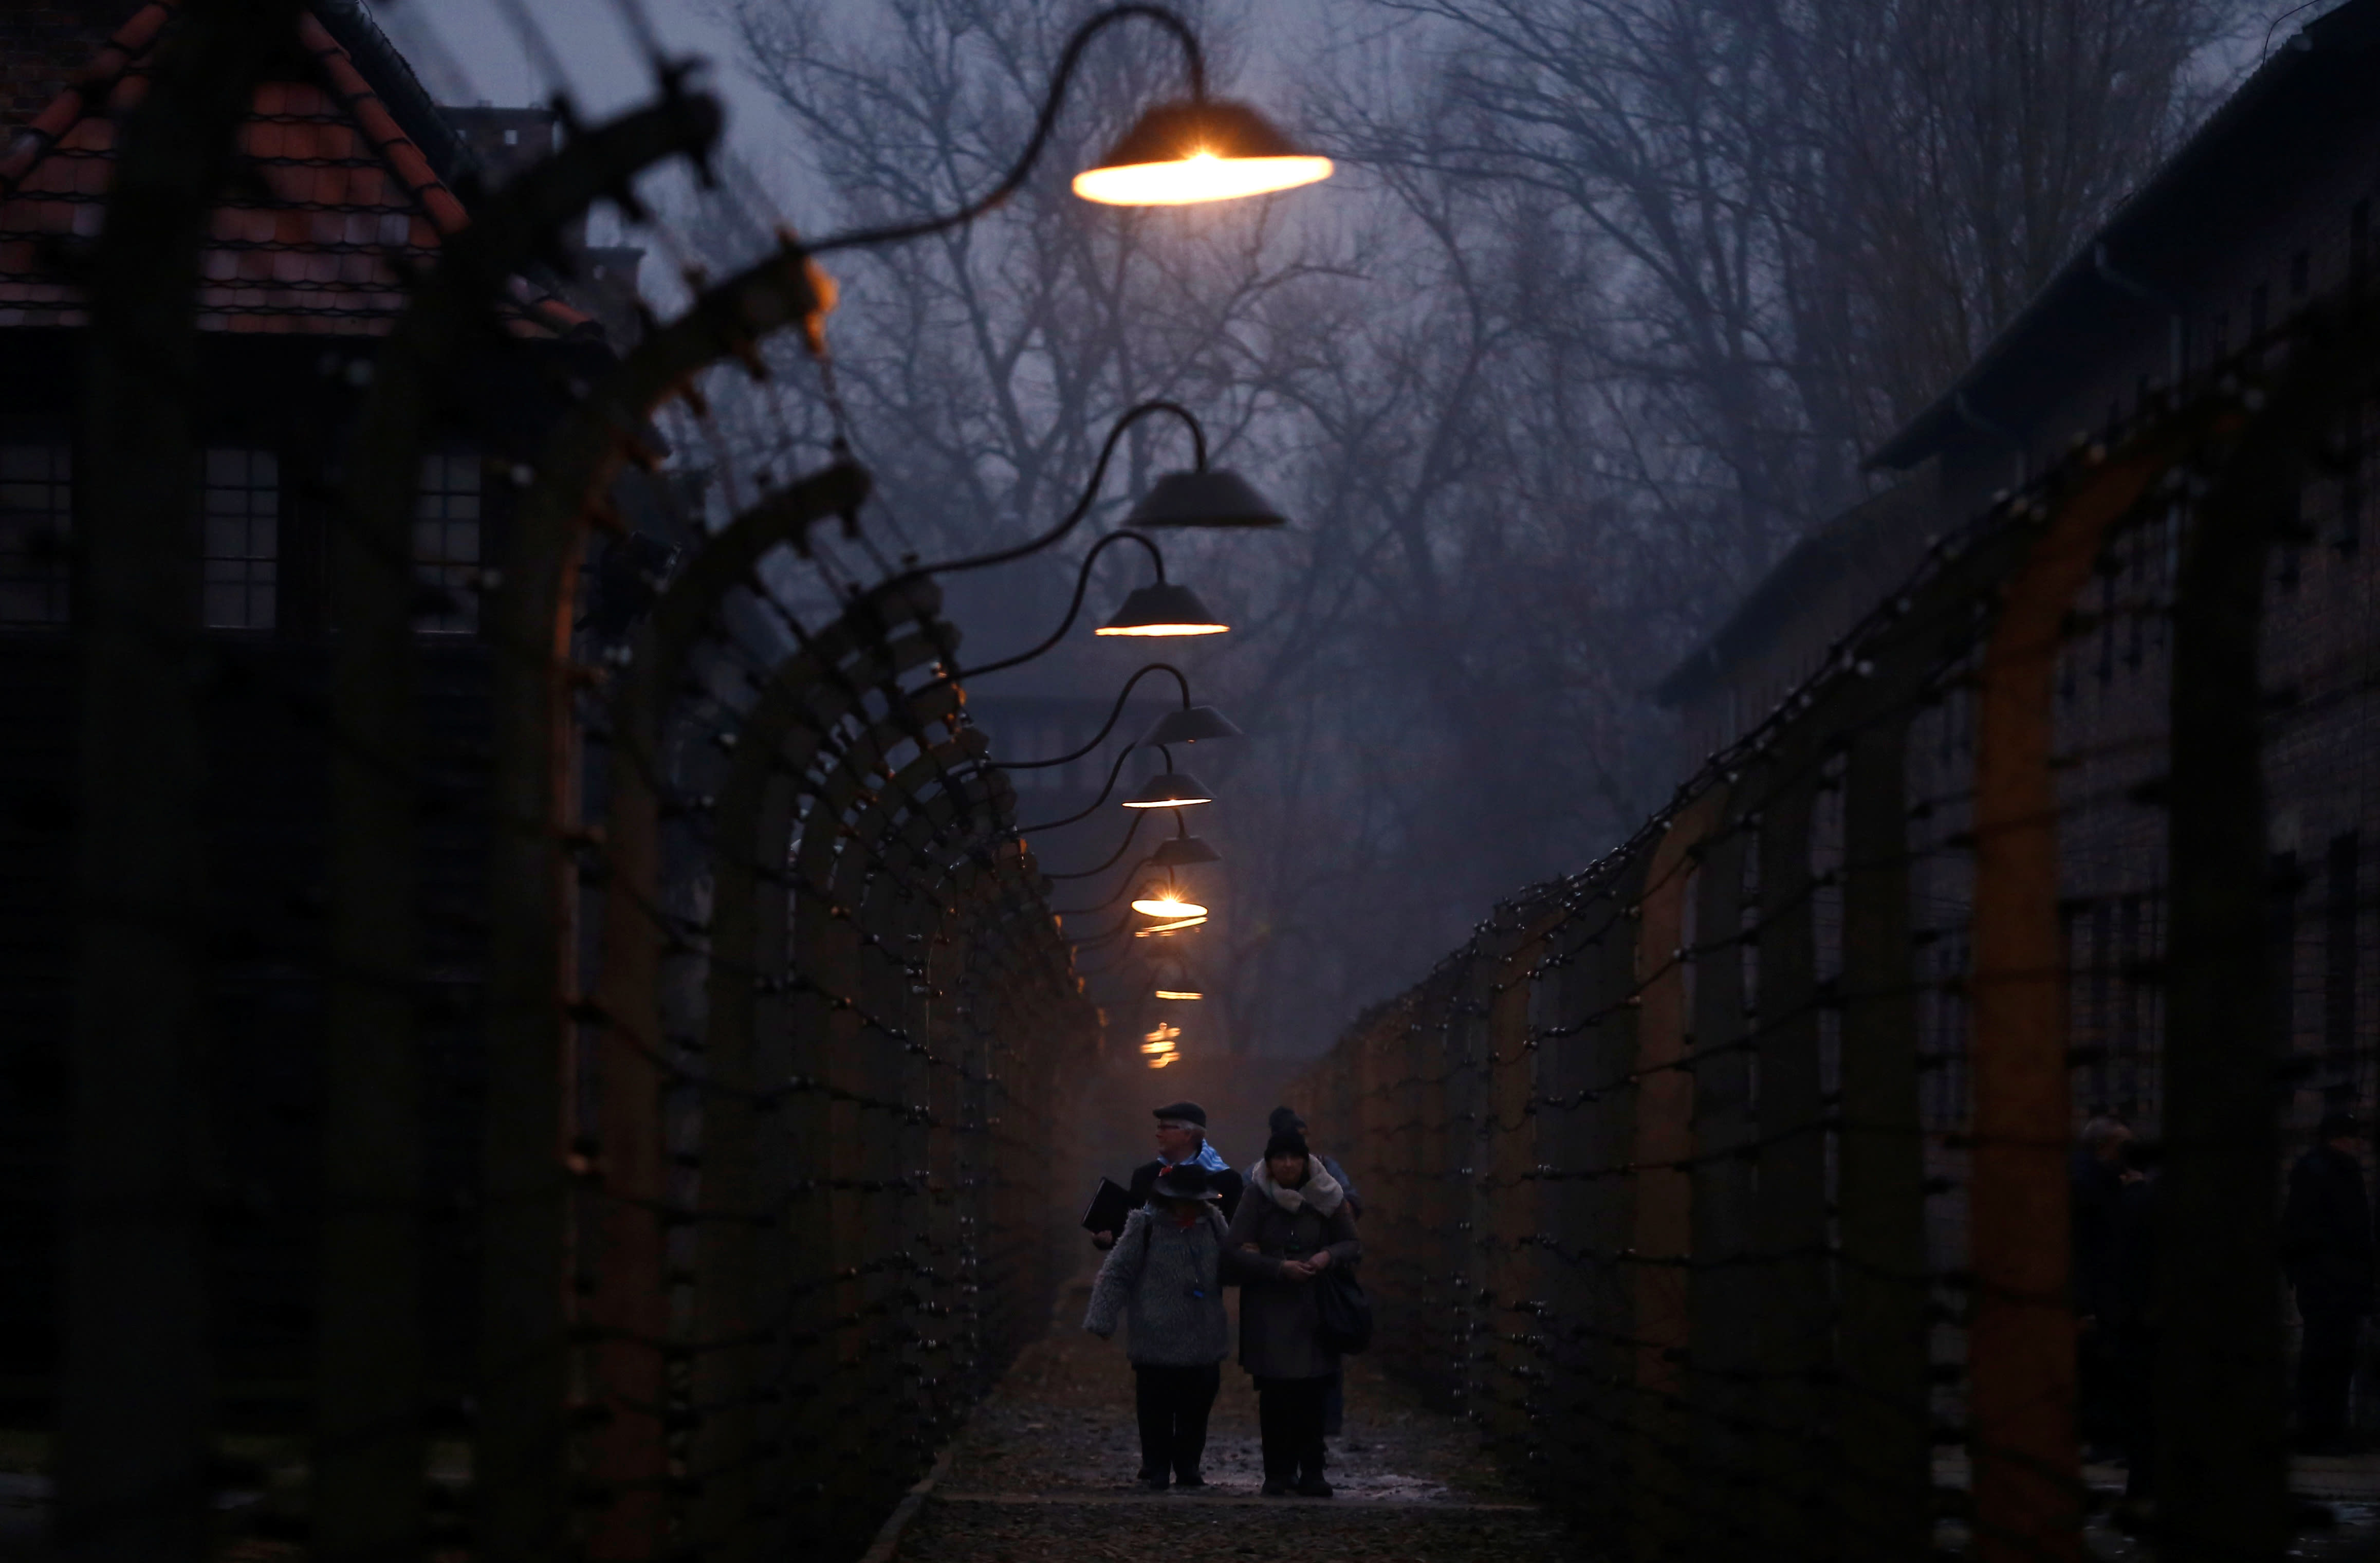 Survivors and guests walk inside the barbed wire fences at Auschwitz, during ceremonies marking the 73rd anniversary of the liberation of the camp, in Oswiecim, Poland, January 27, 2018. (REUTERS/KACPER PEMPEL)